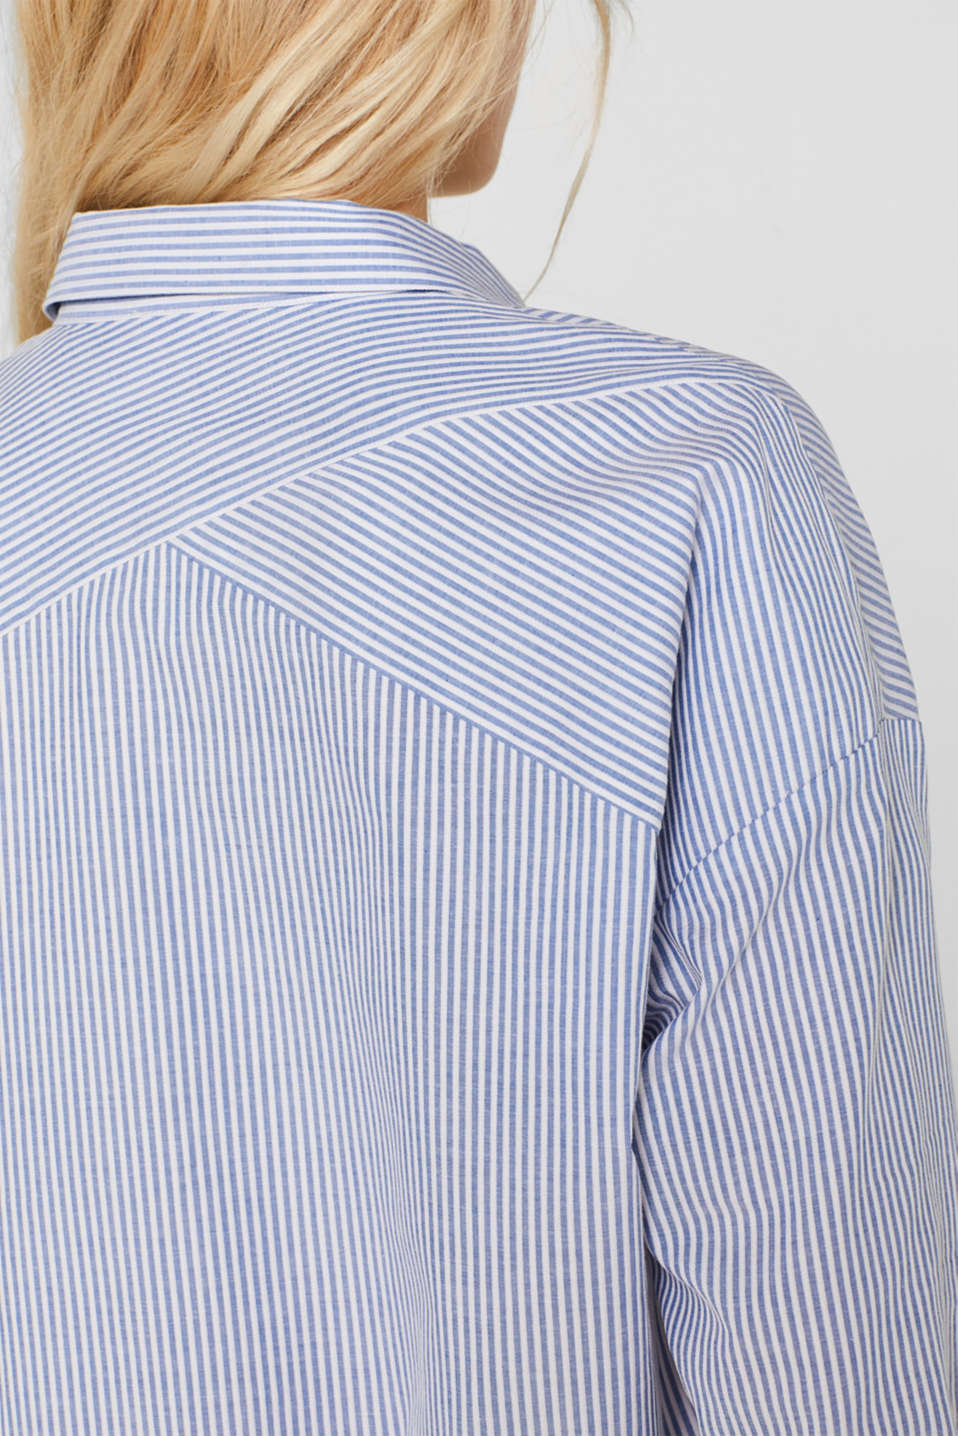 Striped shirt made of 100% cotton, LIGHT BLUE, detail image number 5